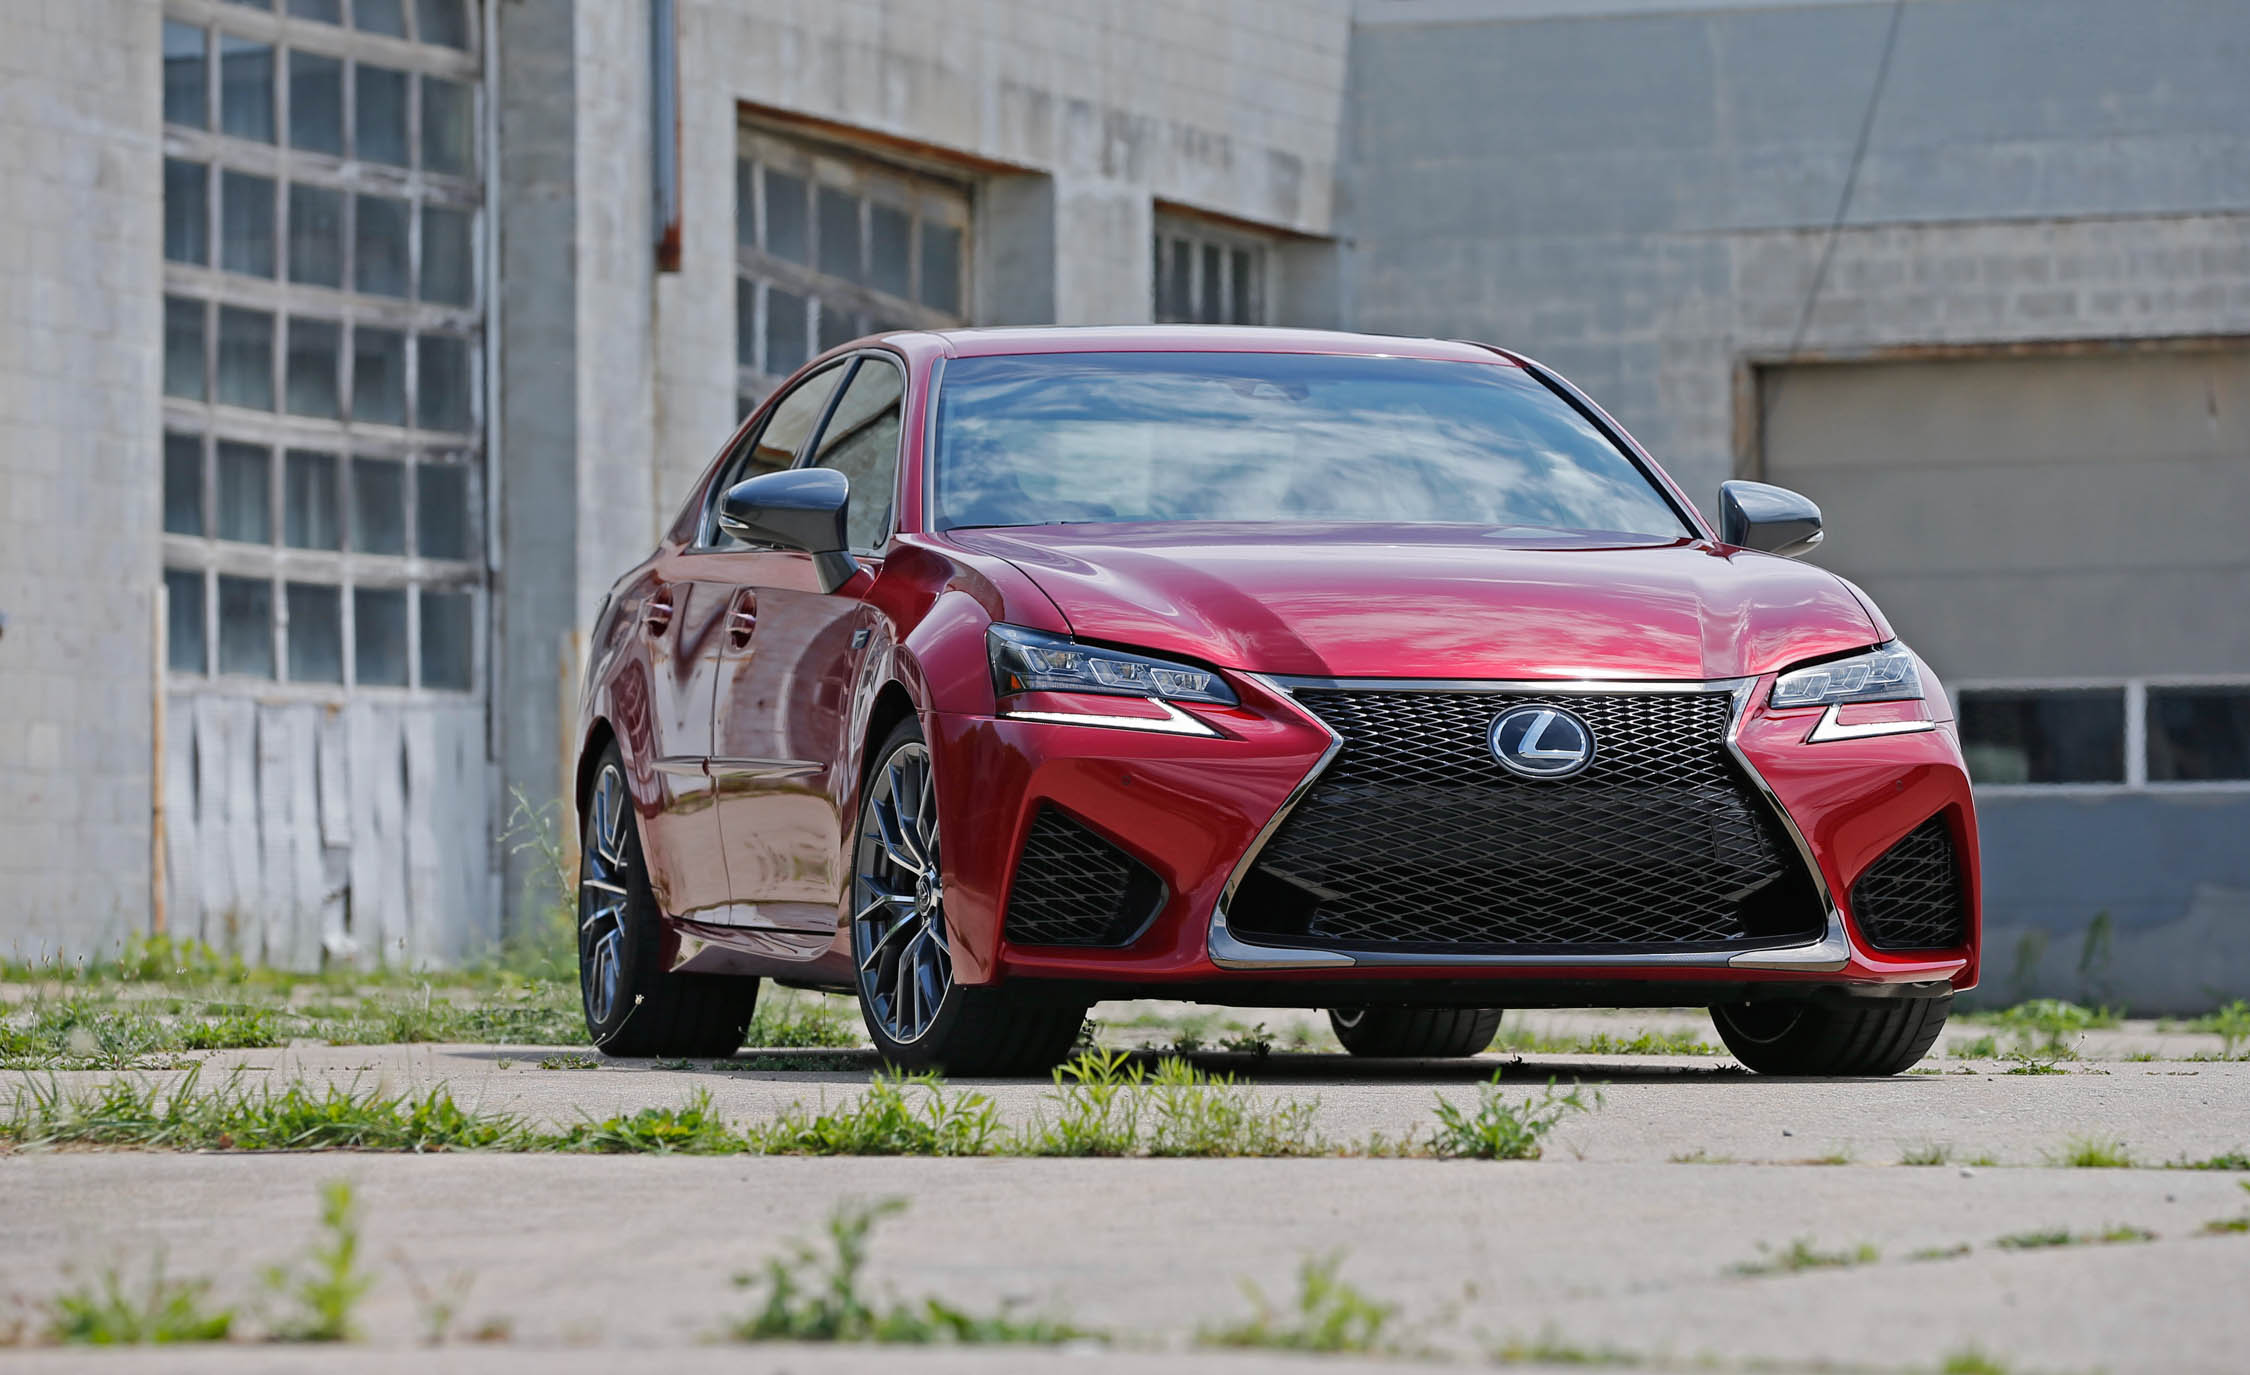 2016 Lexus Gs F Exterior Front (Photo 3 of 20)